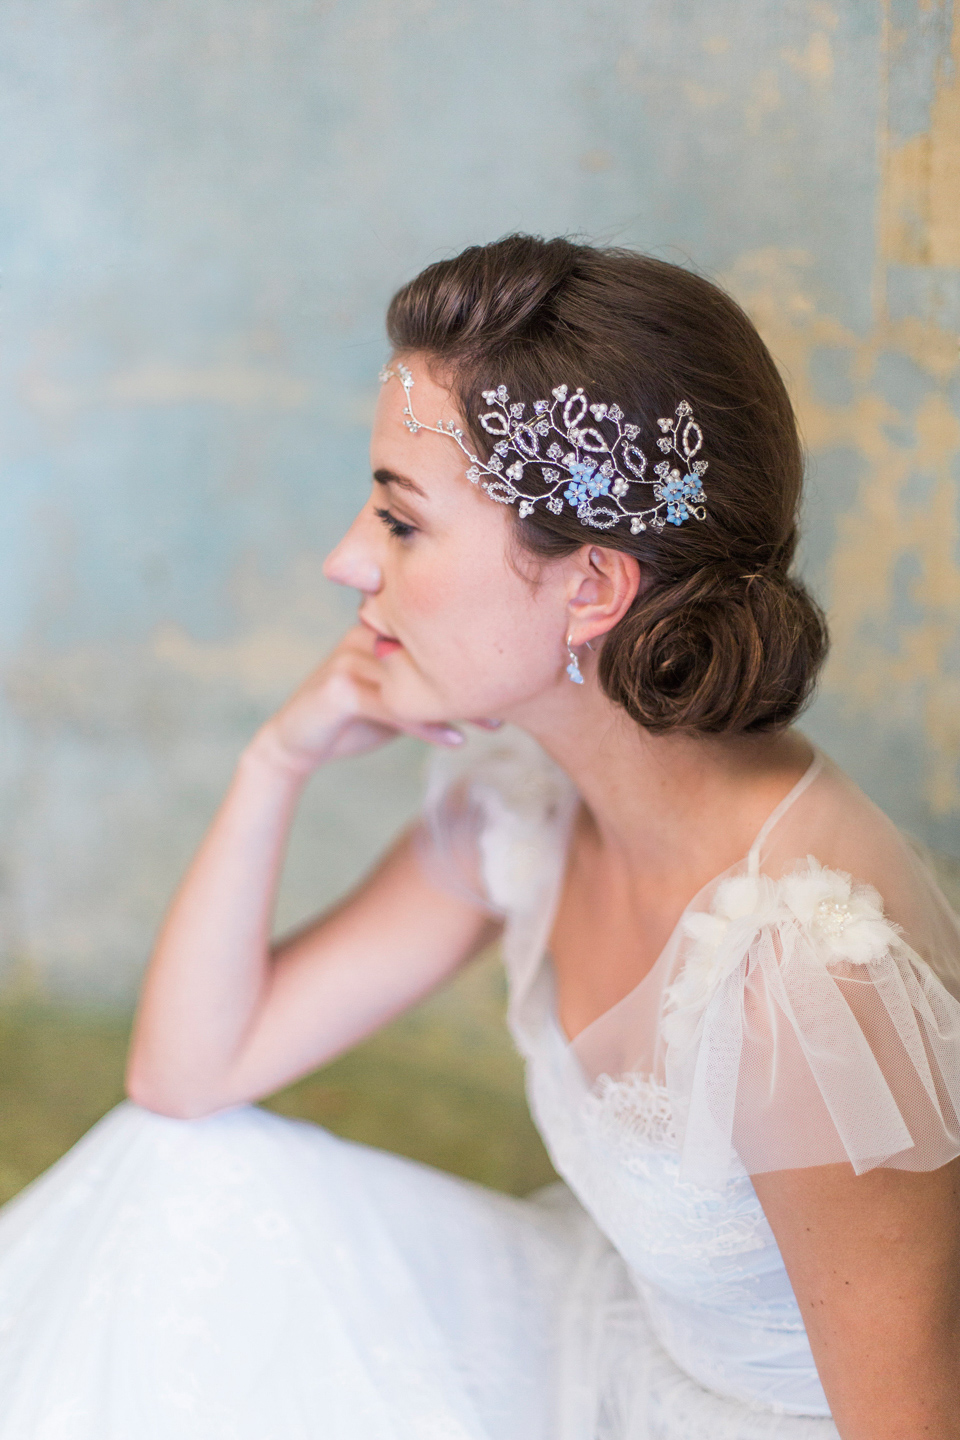 how to choose the right bridal accessories – expert advice from